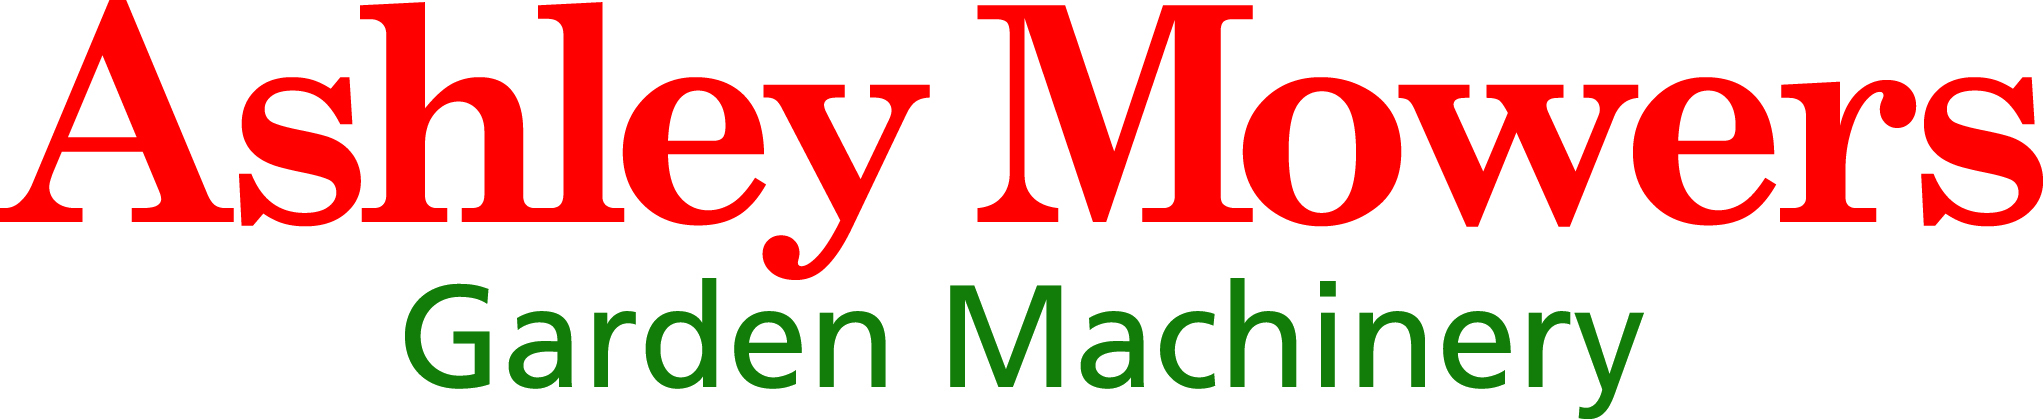 Ashley Mowers Logo